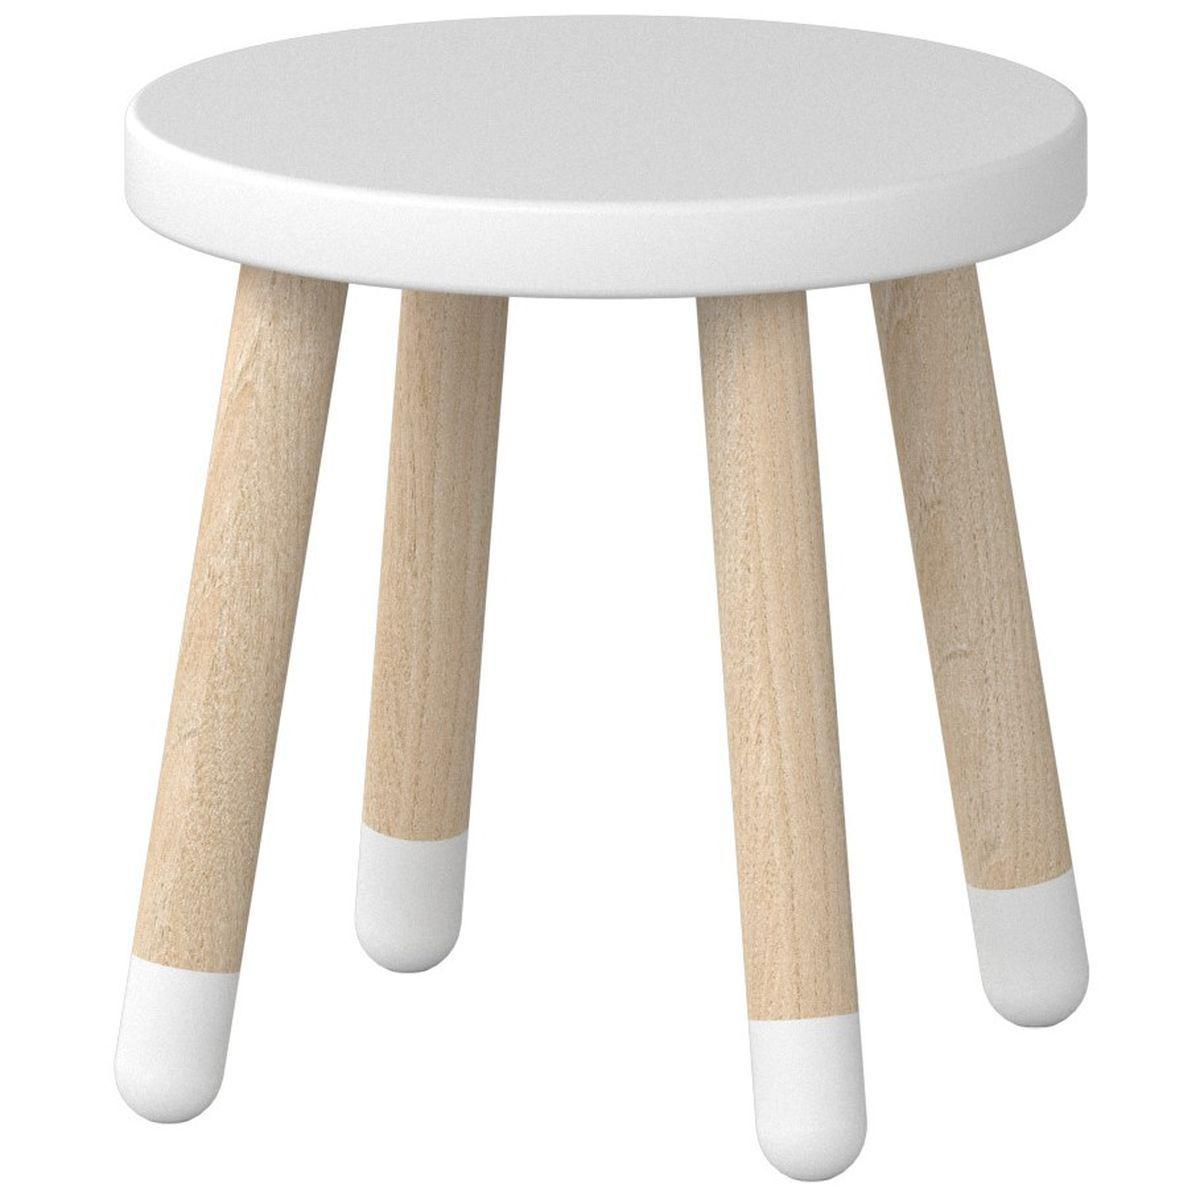 PLAY by Flexa Petit tabouret enfant 30 cm Blanc